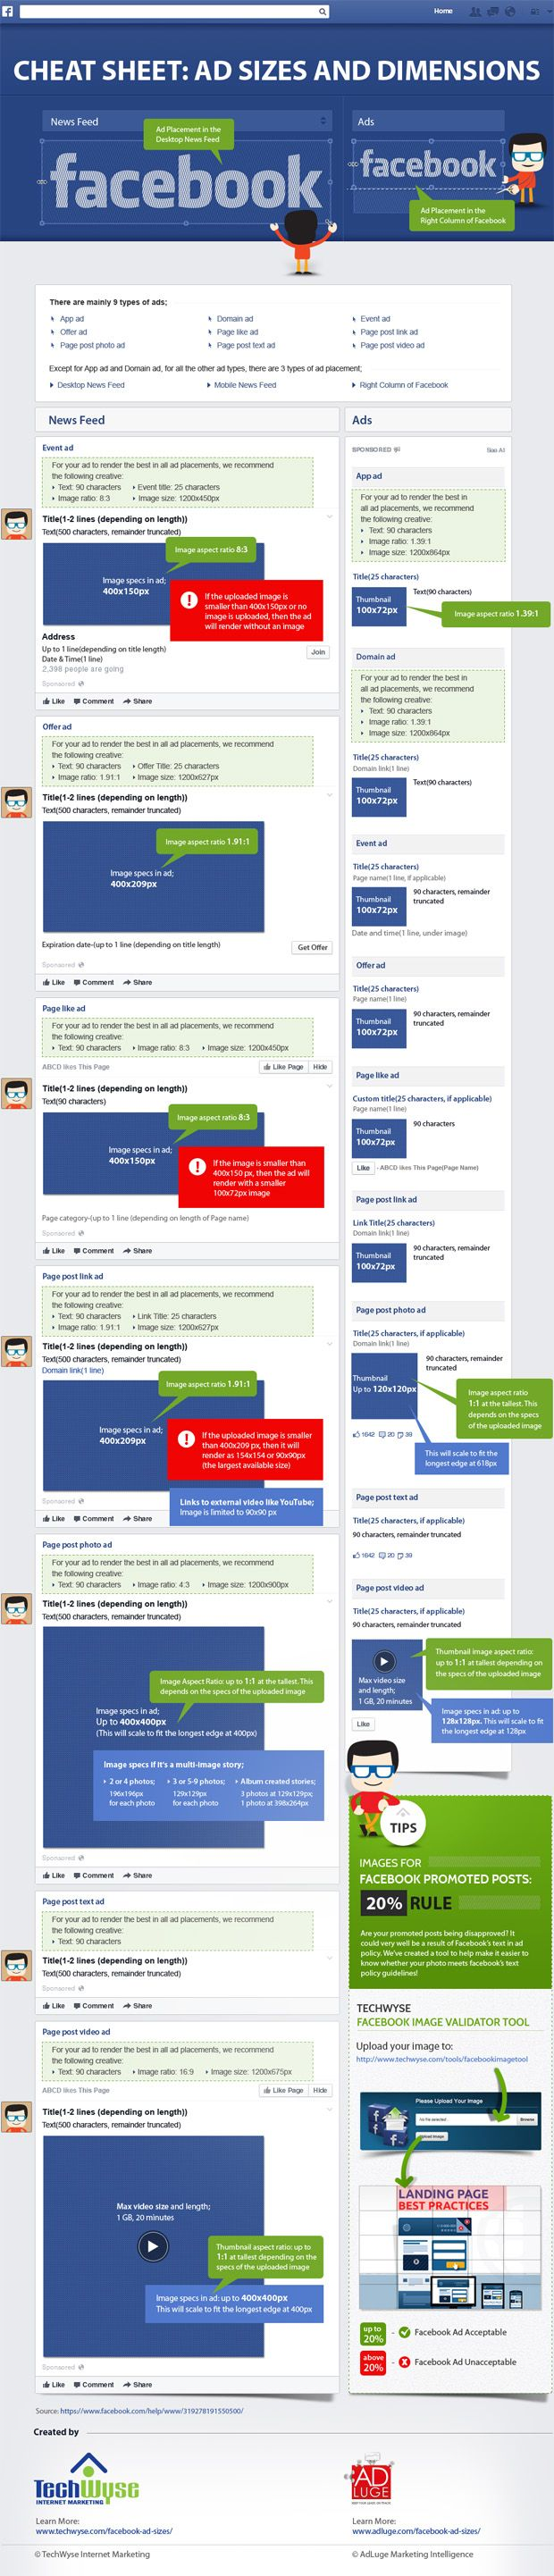 Facebook ad sizes - cheat sheet